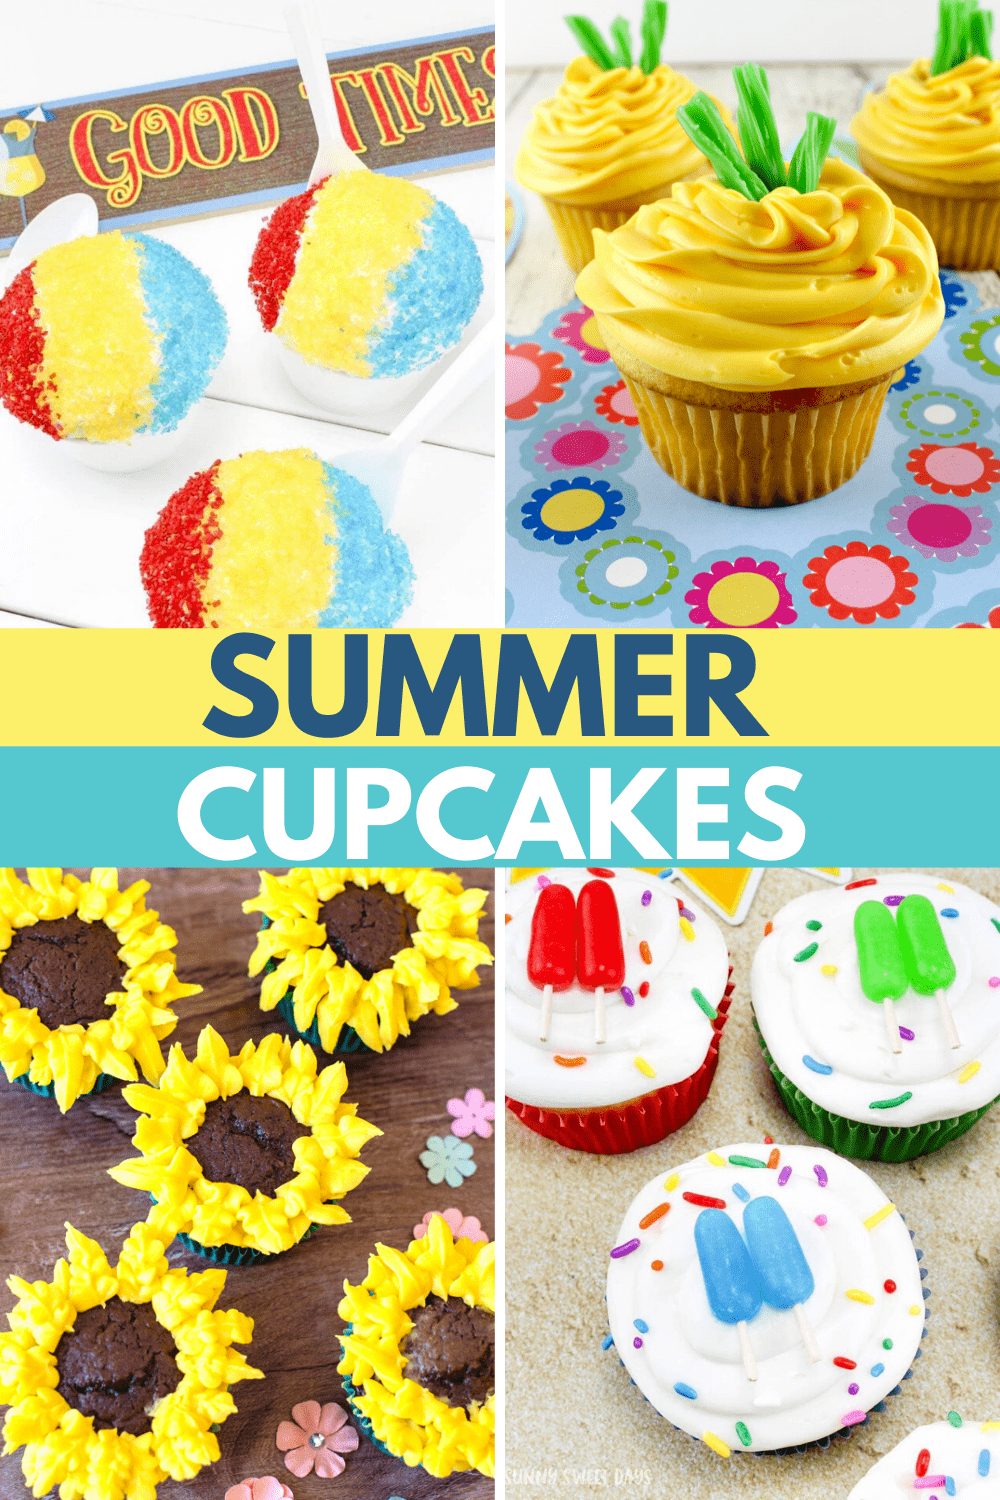 🧁 Summer Cupcakes: Cute Cupcake Ideas With Printable Toppers